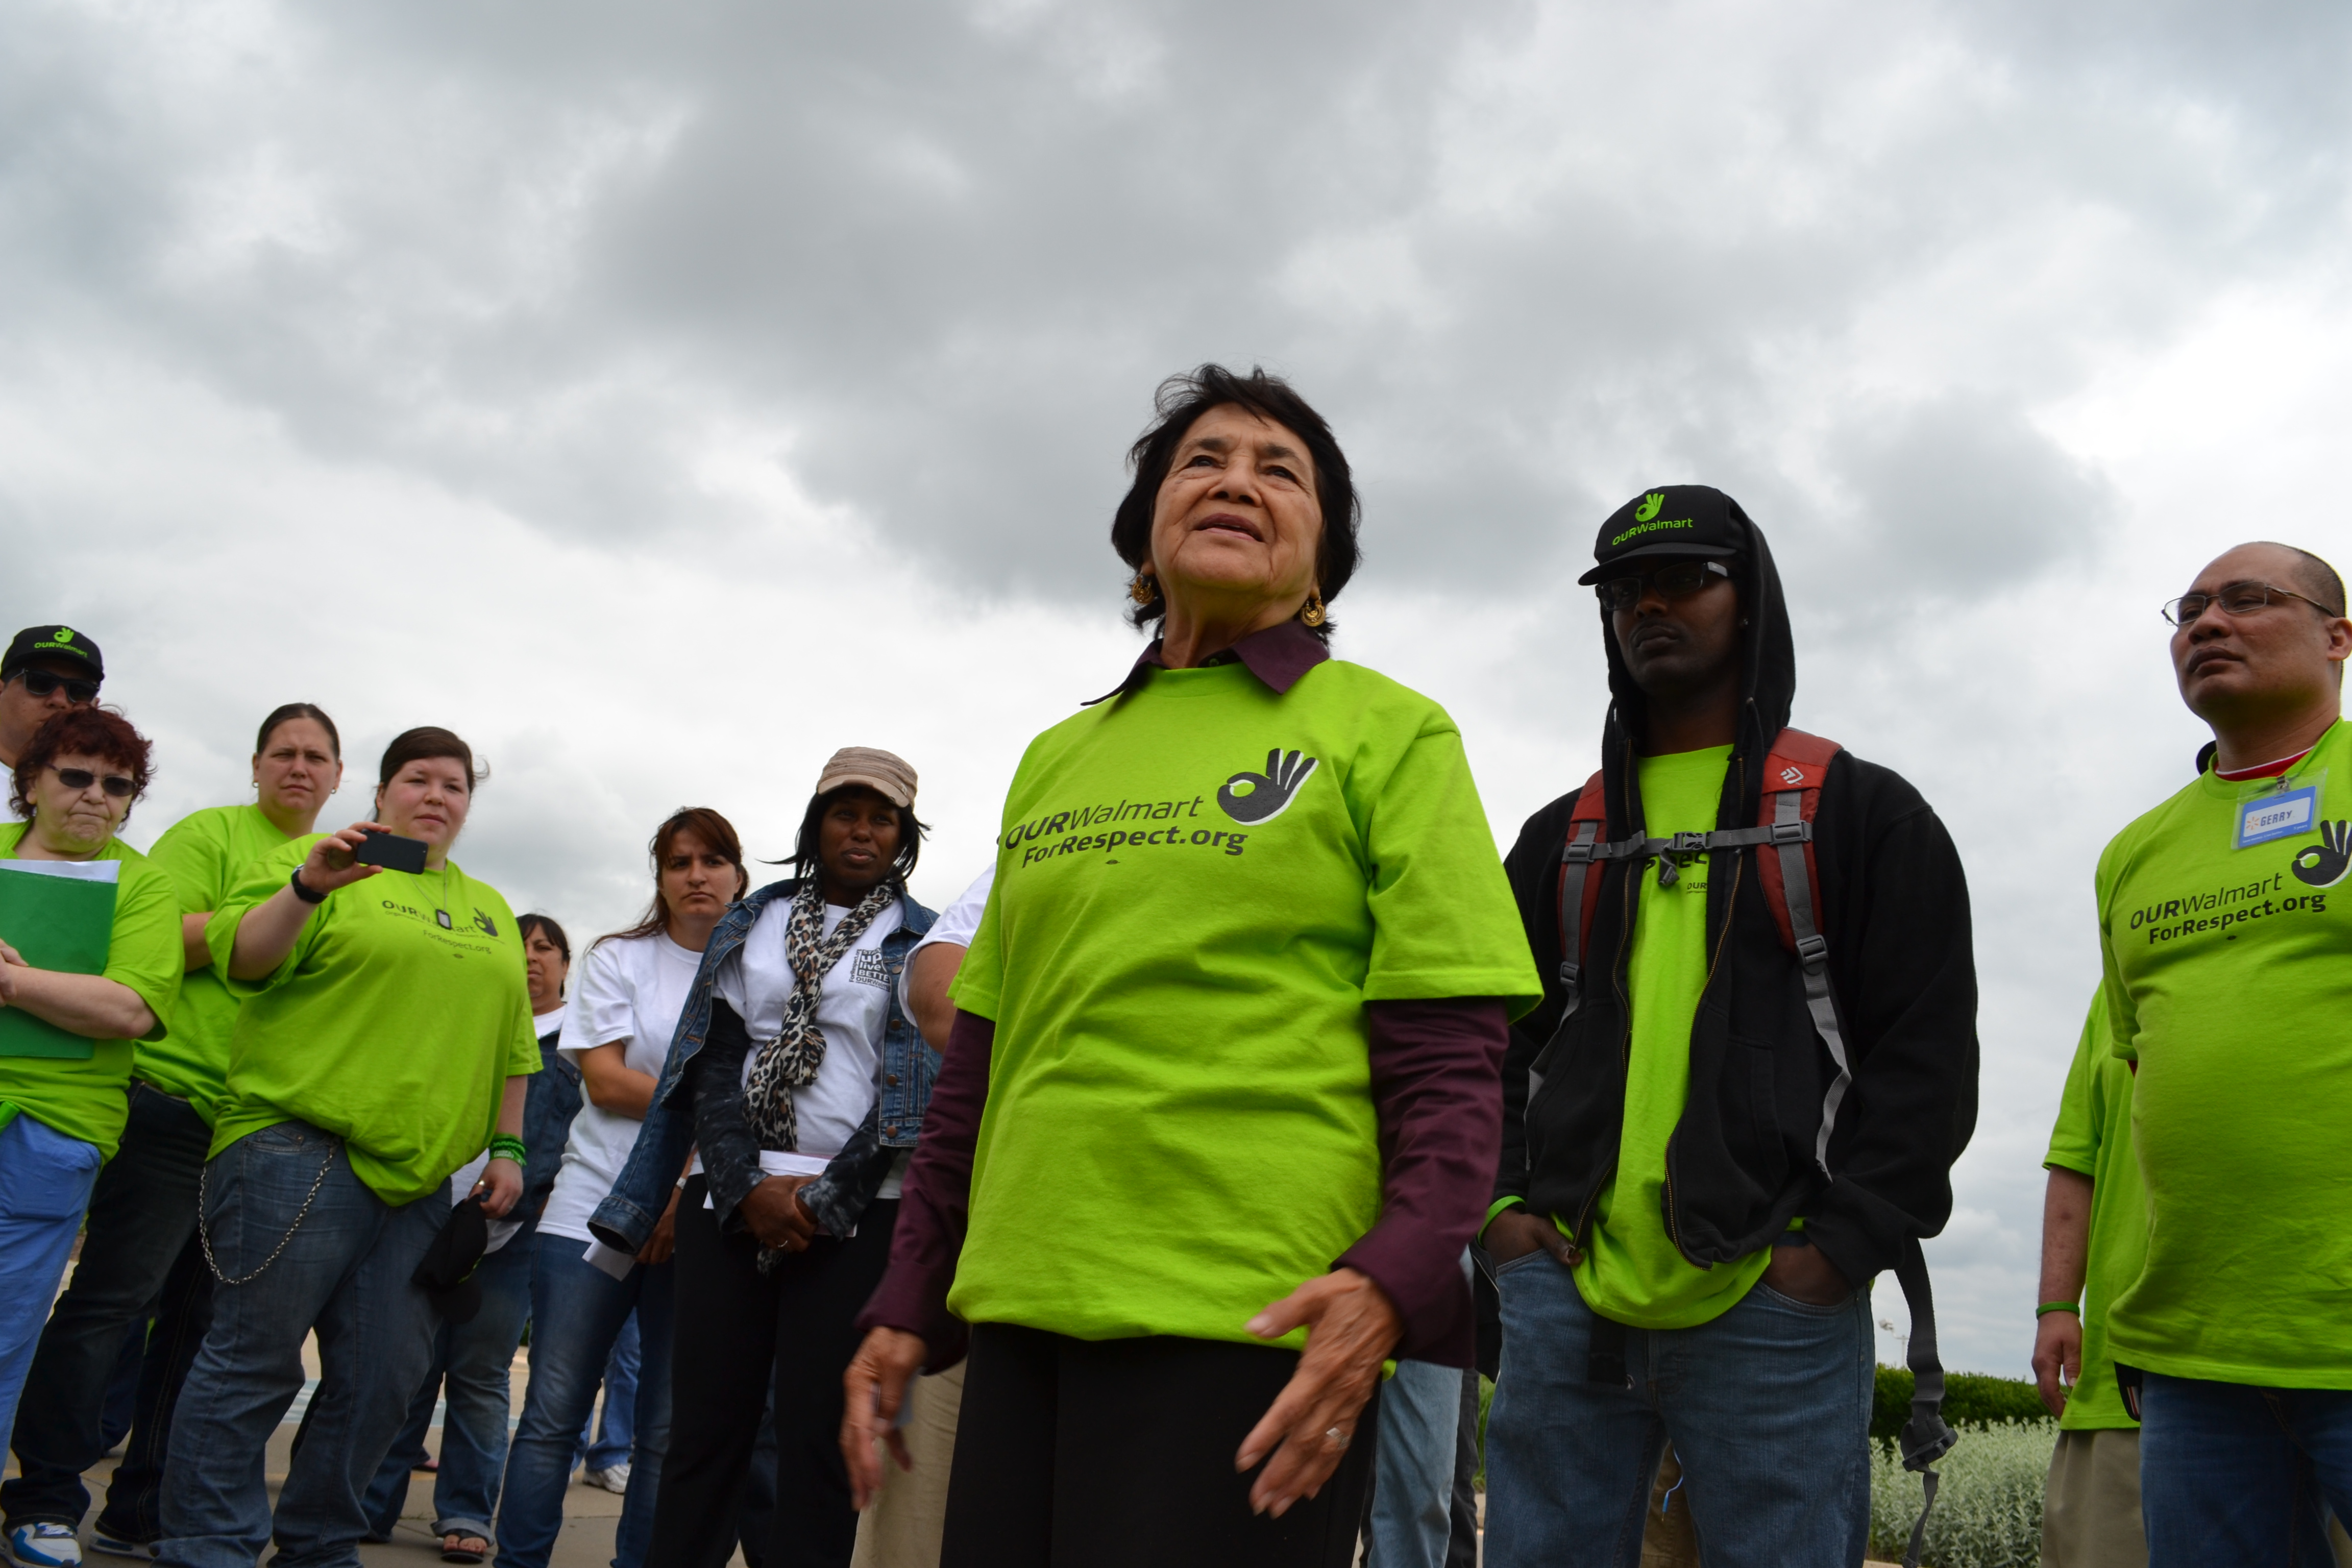 Dolores Huerta, standing with OUR Walmart members and workers during the Ride for Respect in summer 2013.